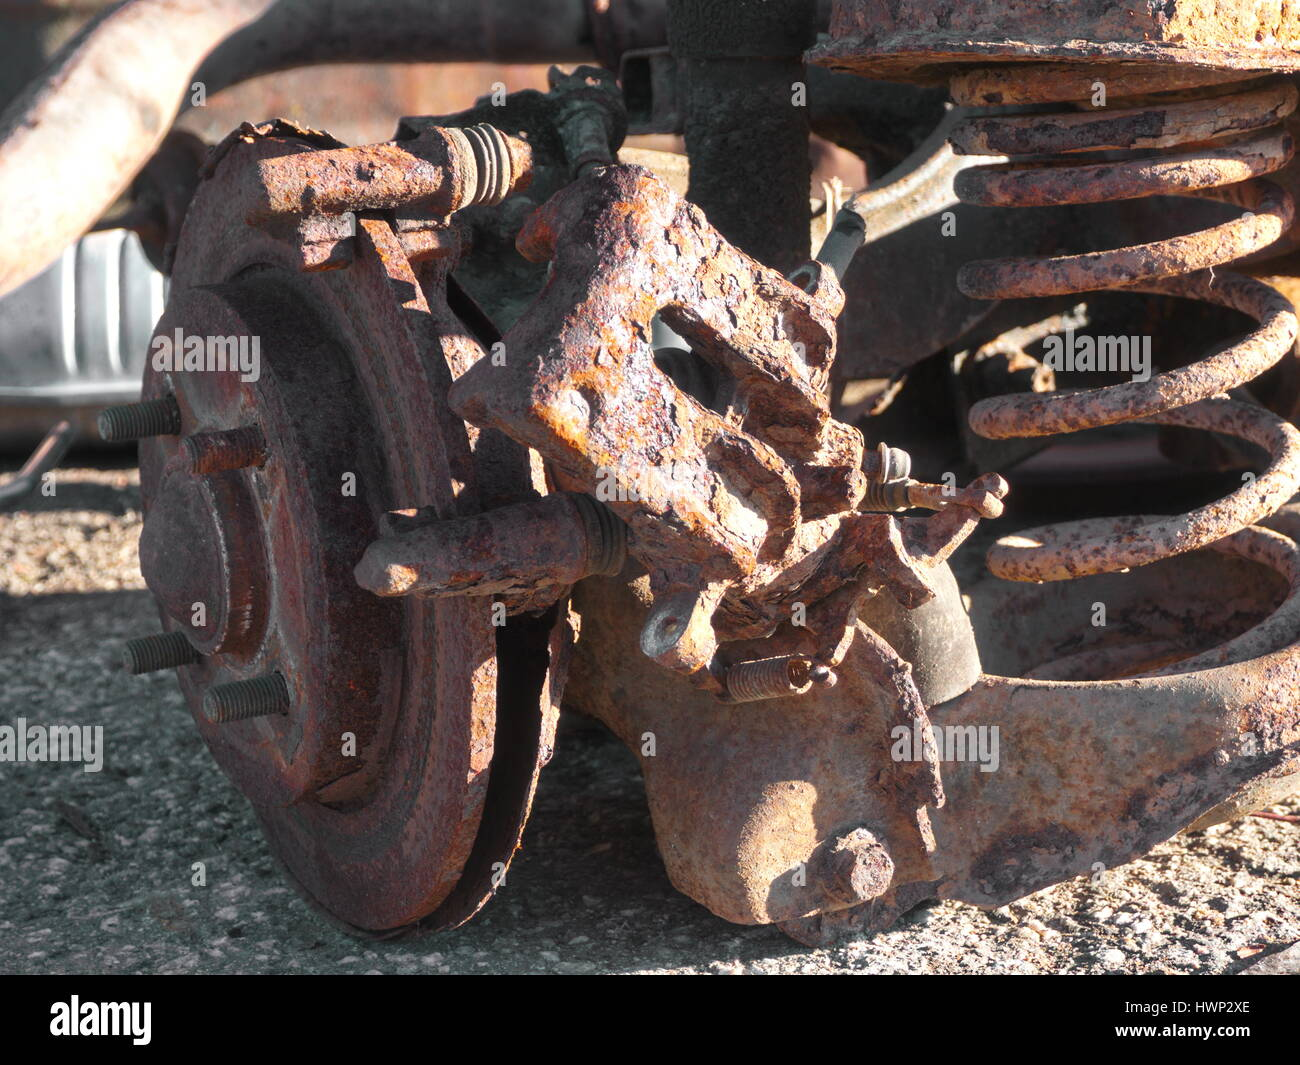 Rusty parts from old car - Stock Image